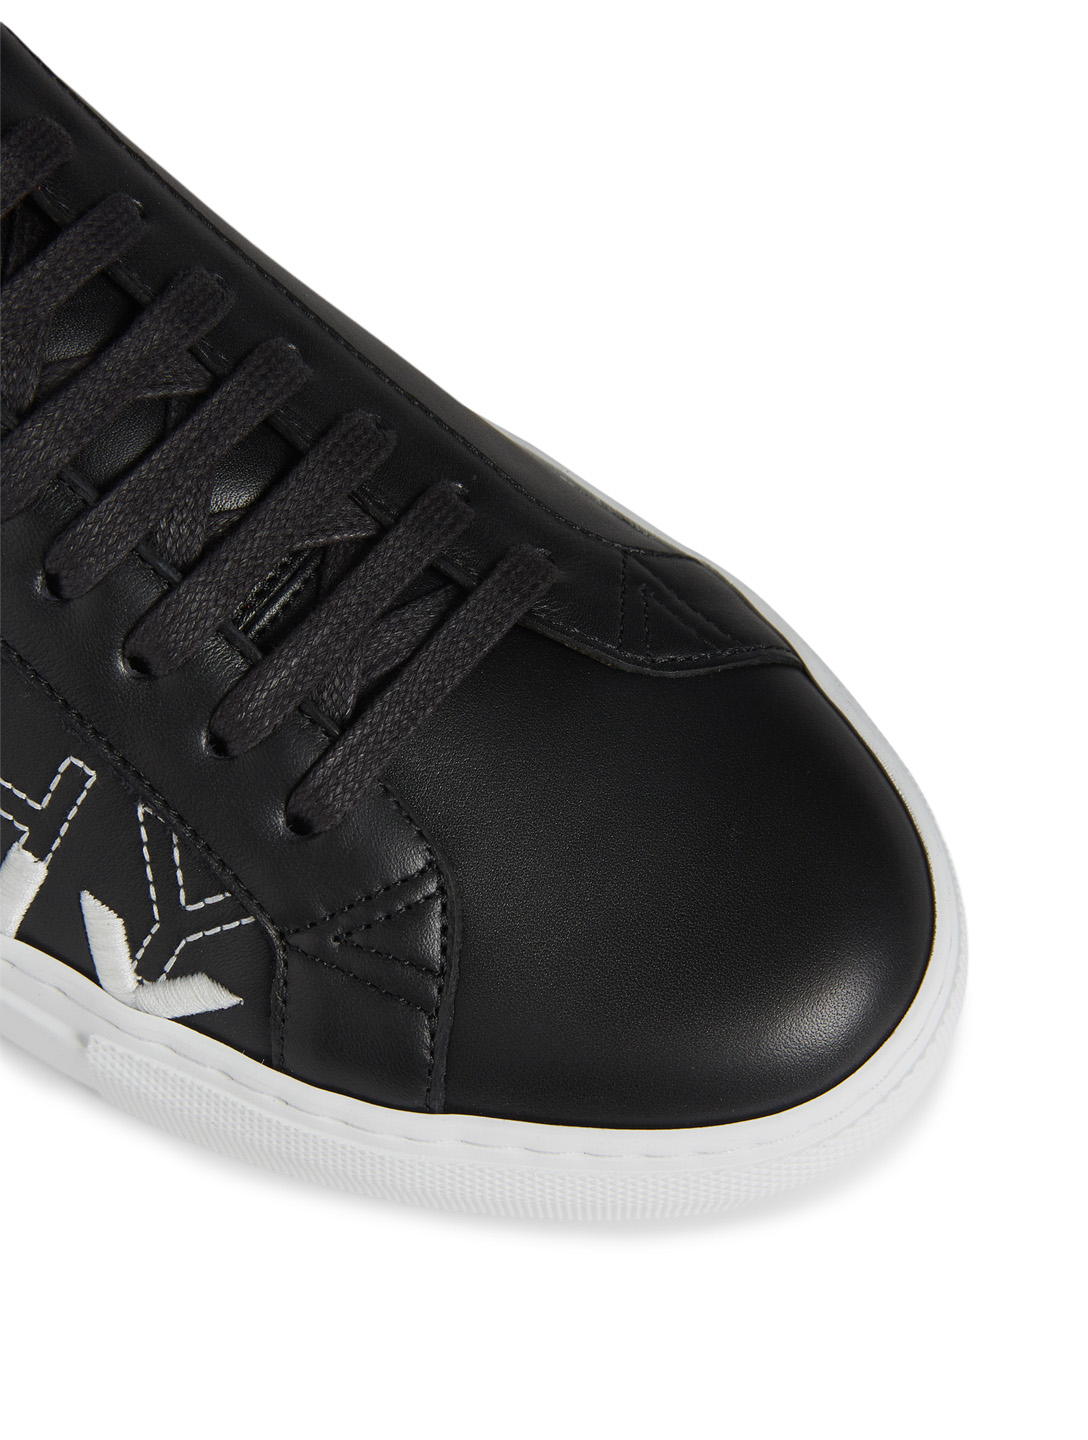 GIVENCHY Urban Street Leather Sneakers Men's Black